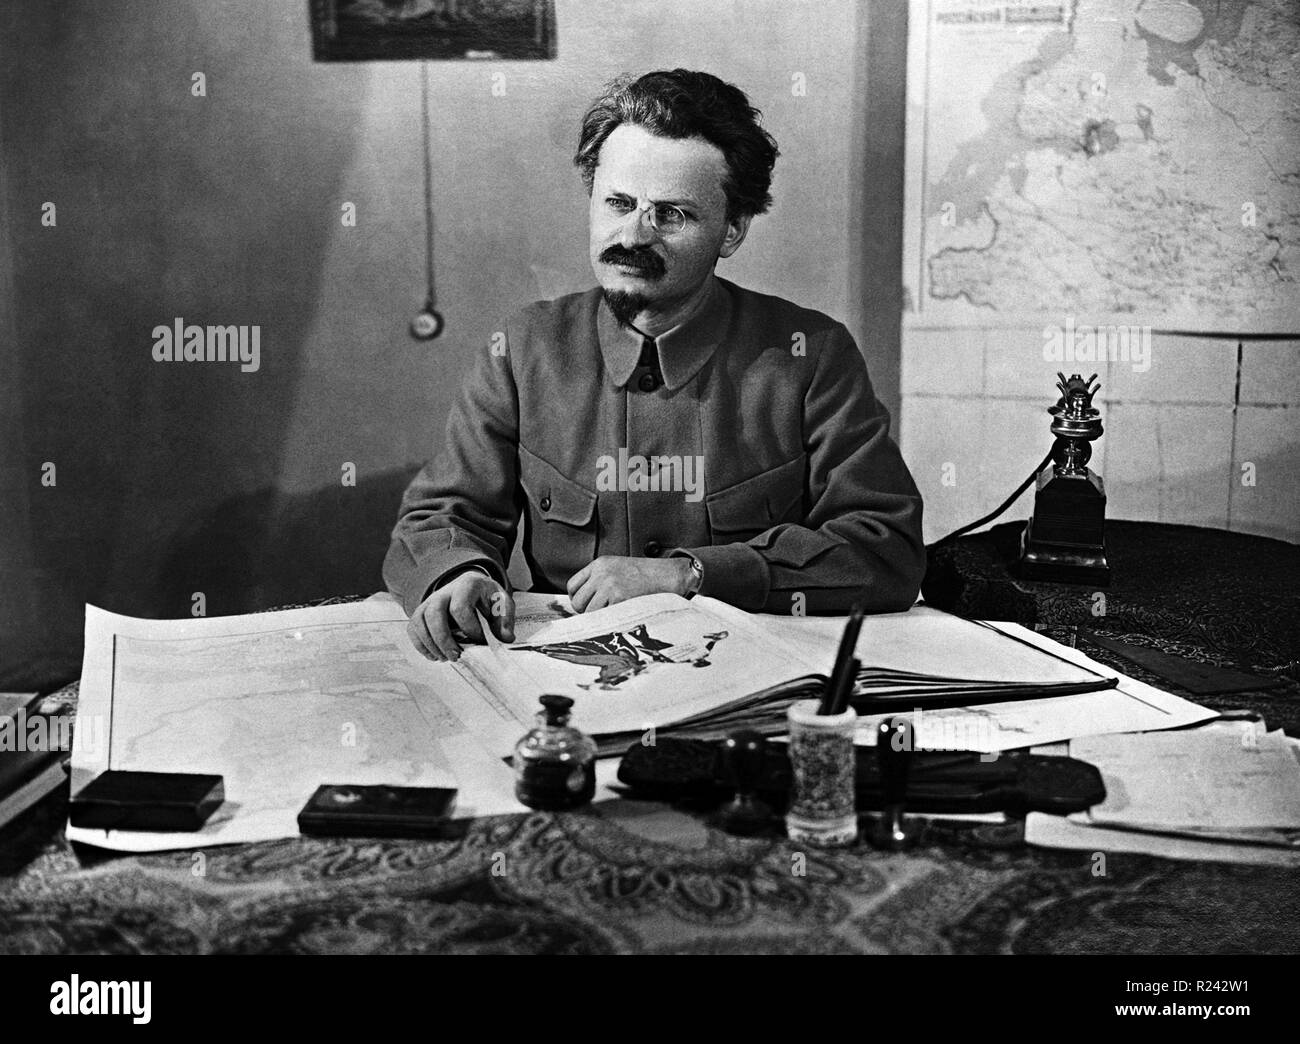 Leon Trotsky 1879 - 21 August 1940. Marxist revolutionary and theorist, Soviet politician, and the founder and first leader of the Red Army - Stock Image